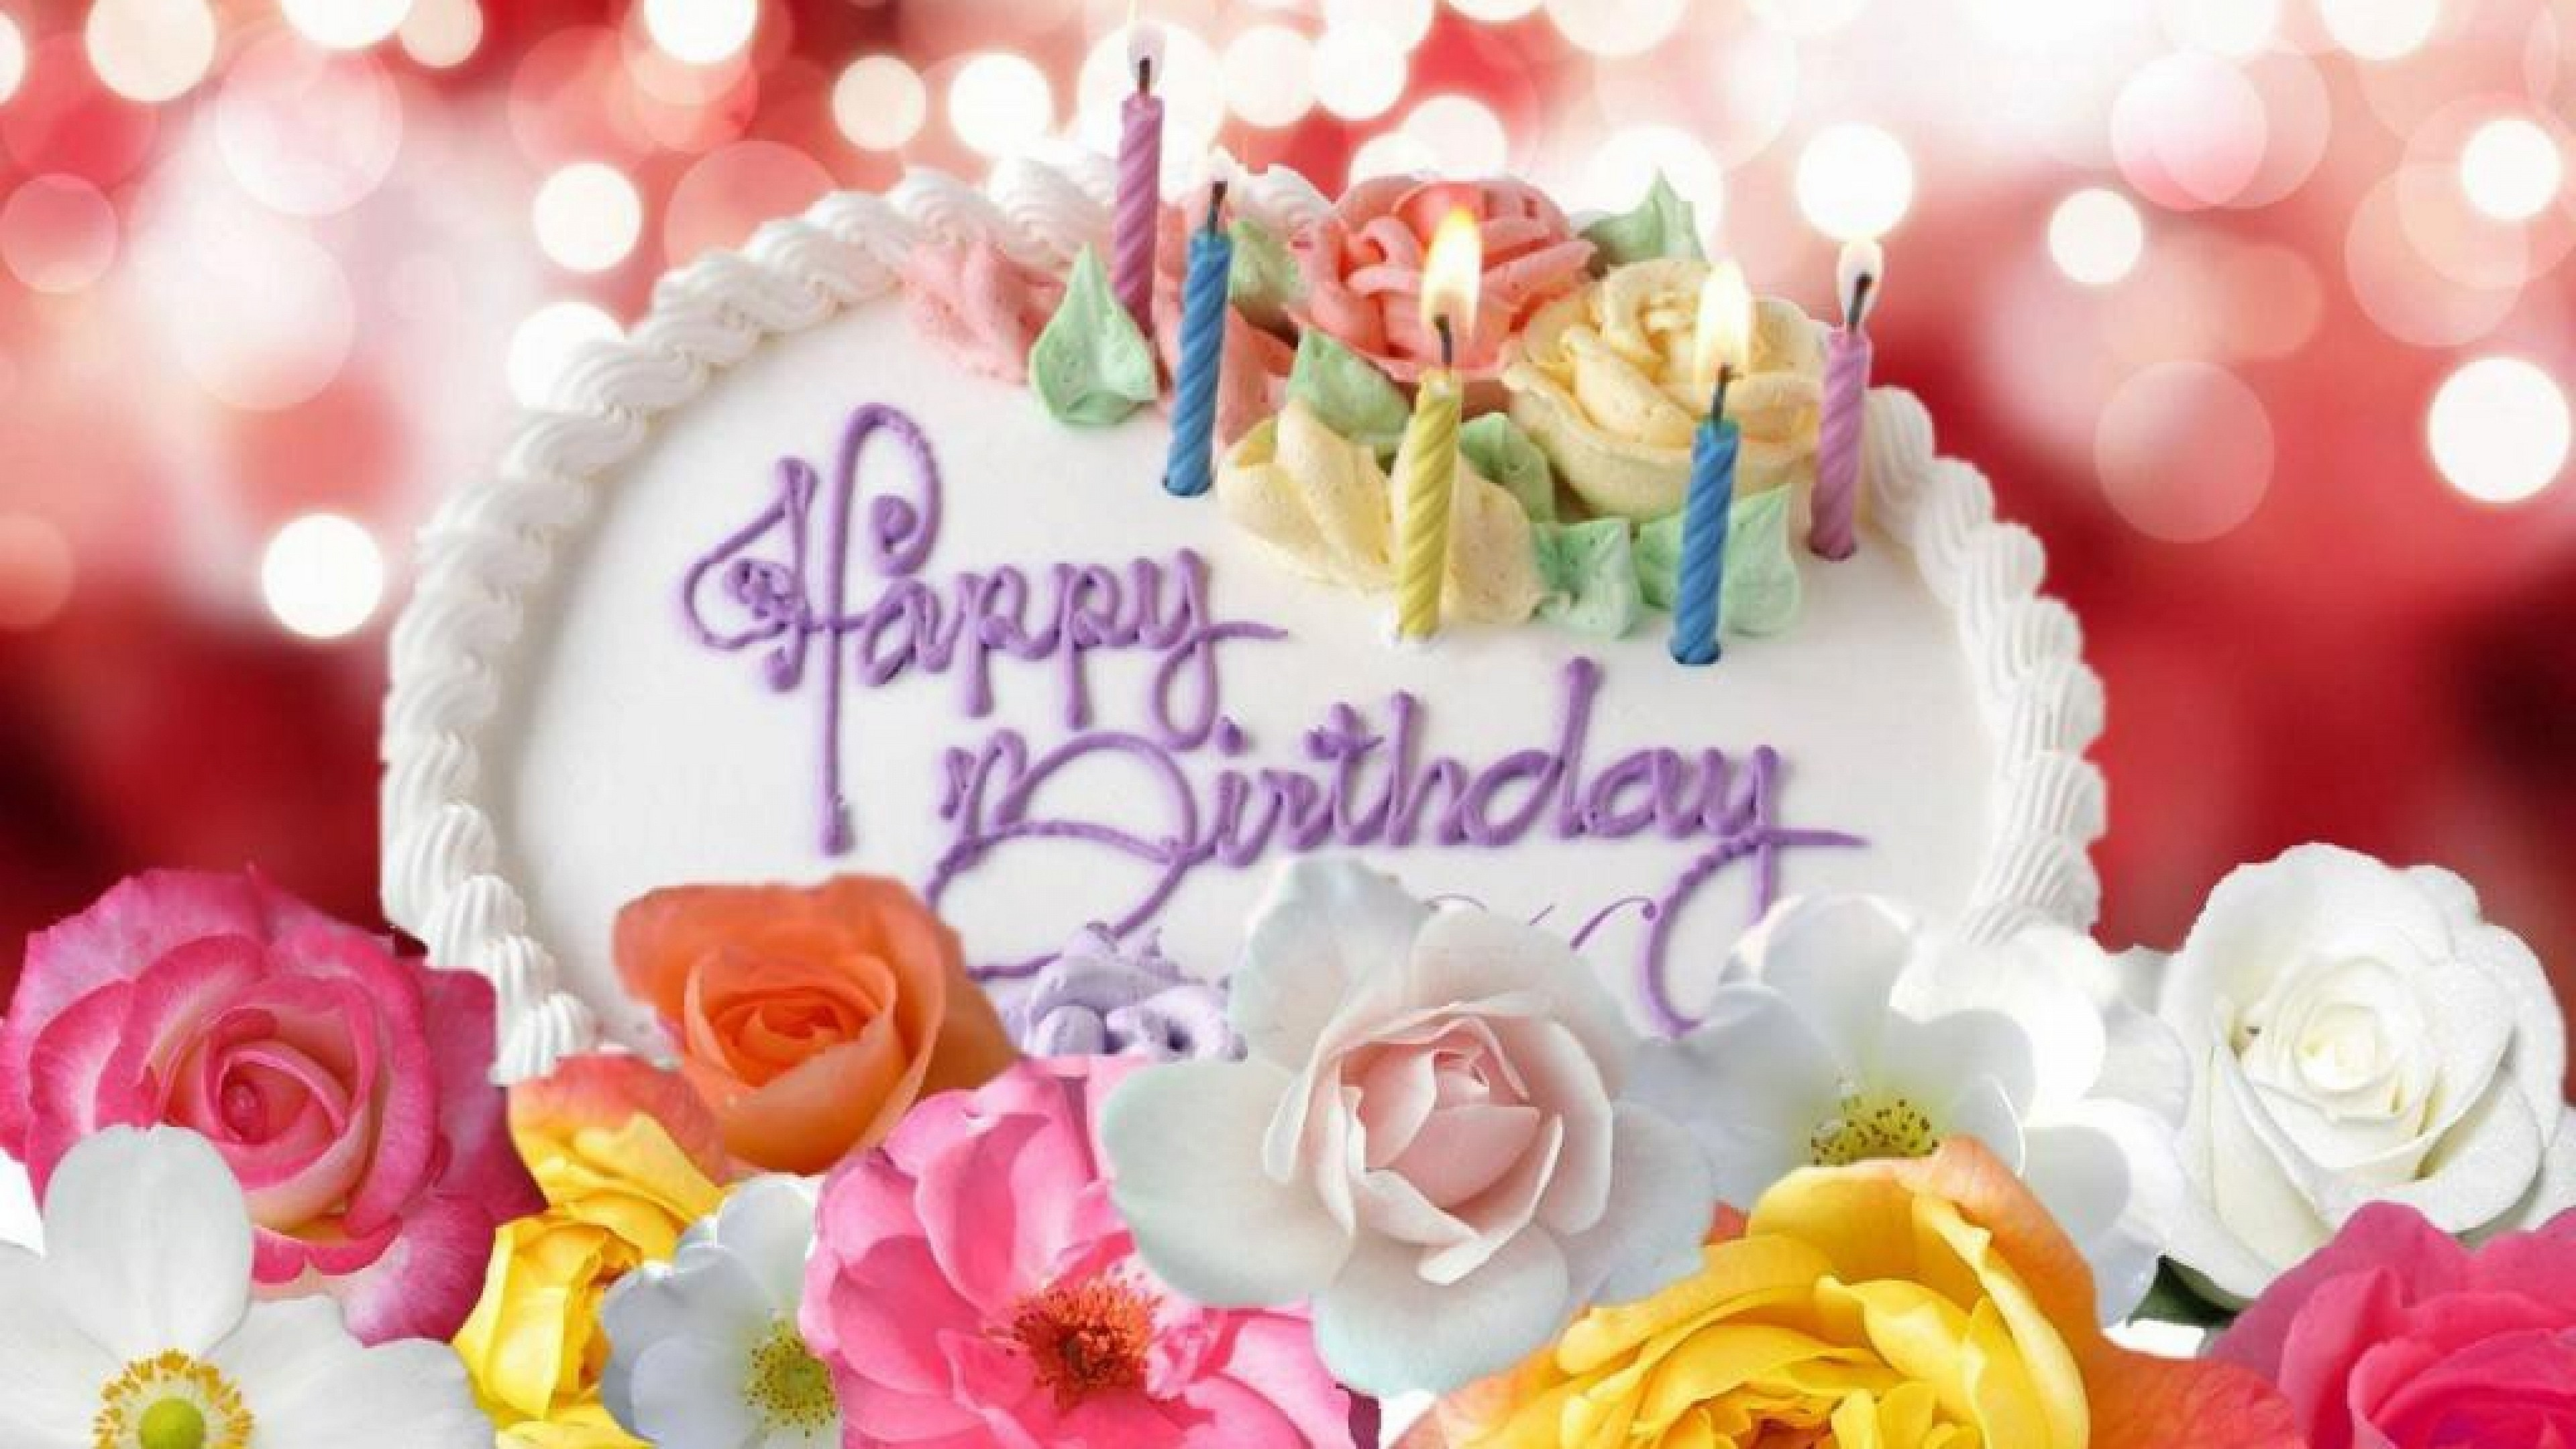 Beautiful Rose Cake Happy Birthday Image Wallpapers Free Download